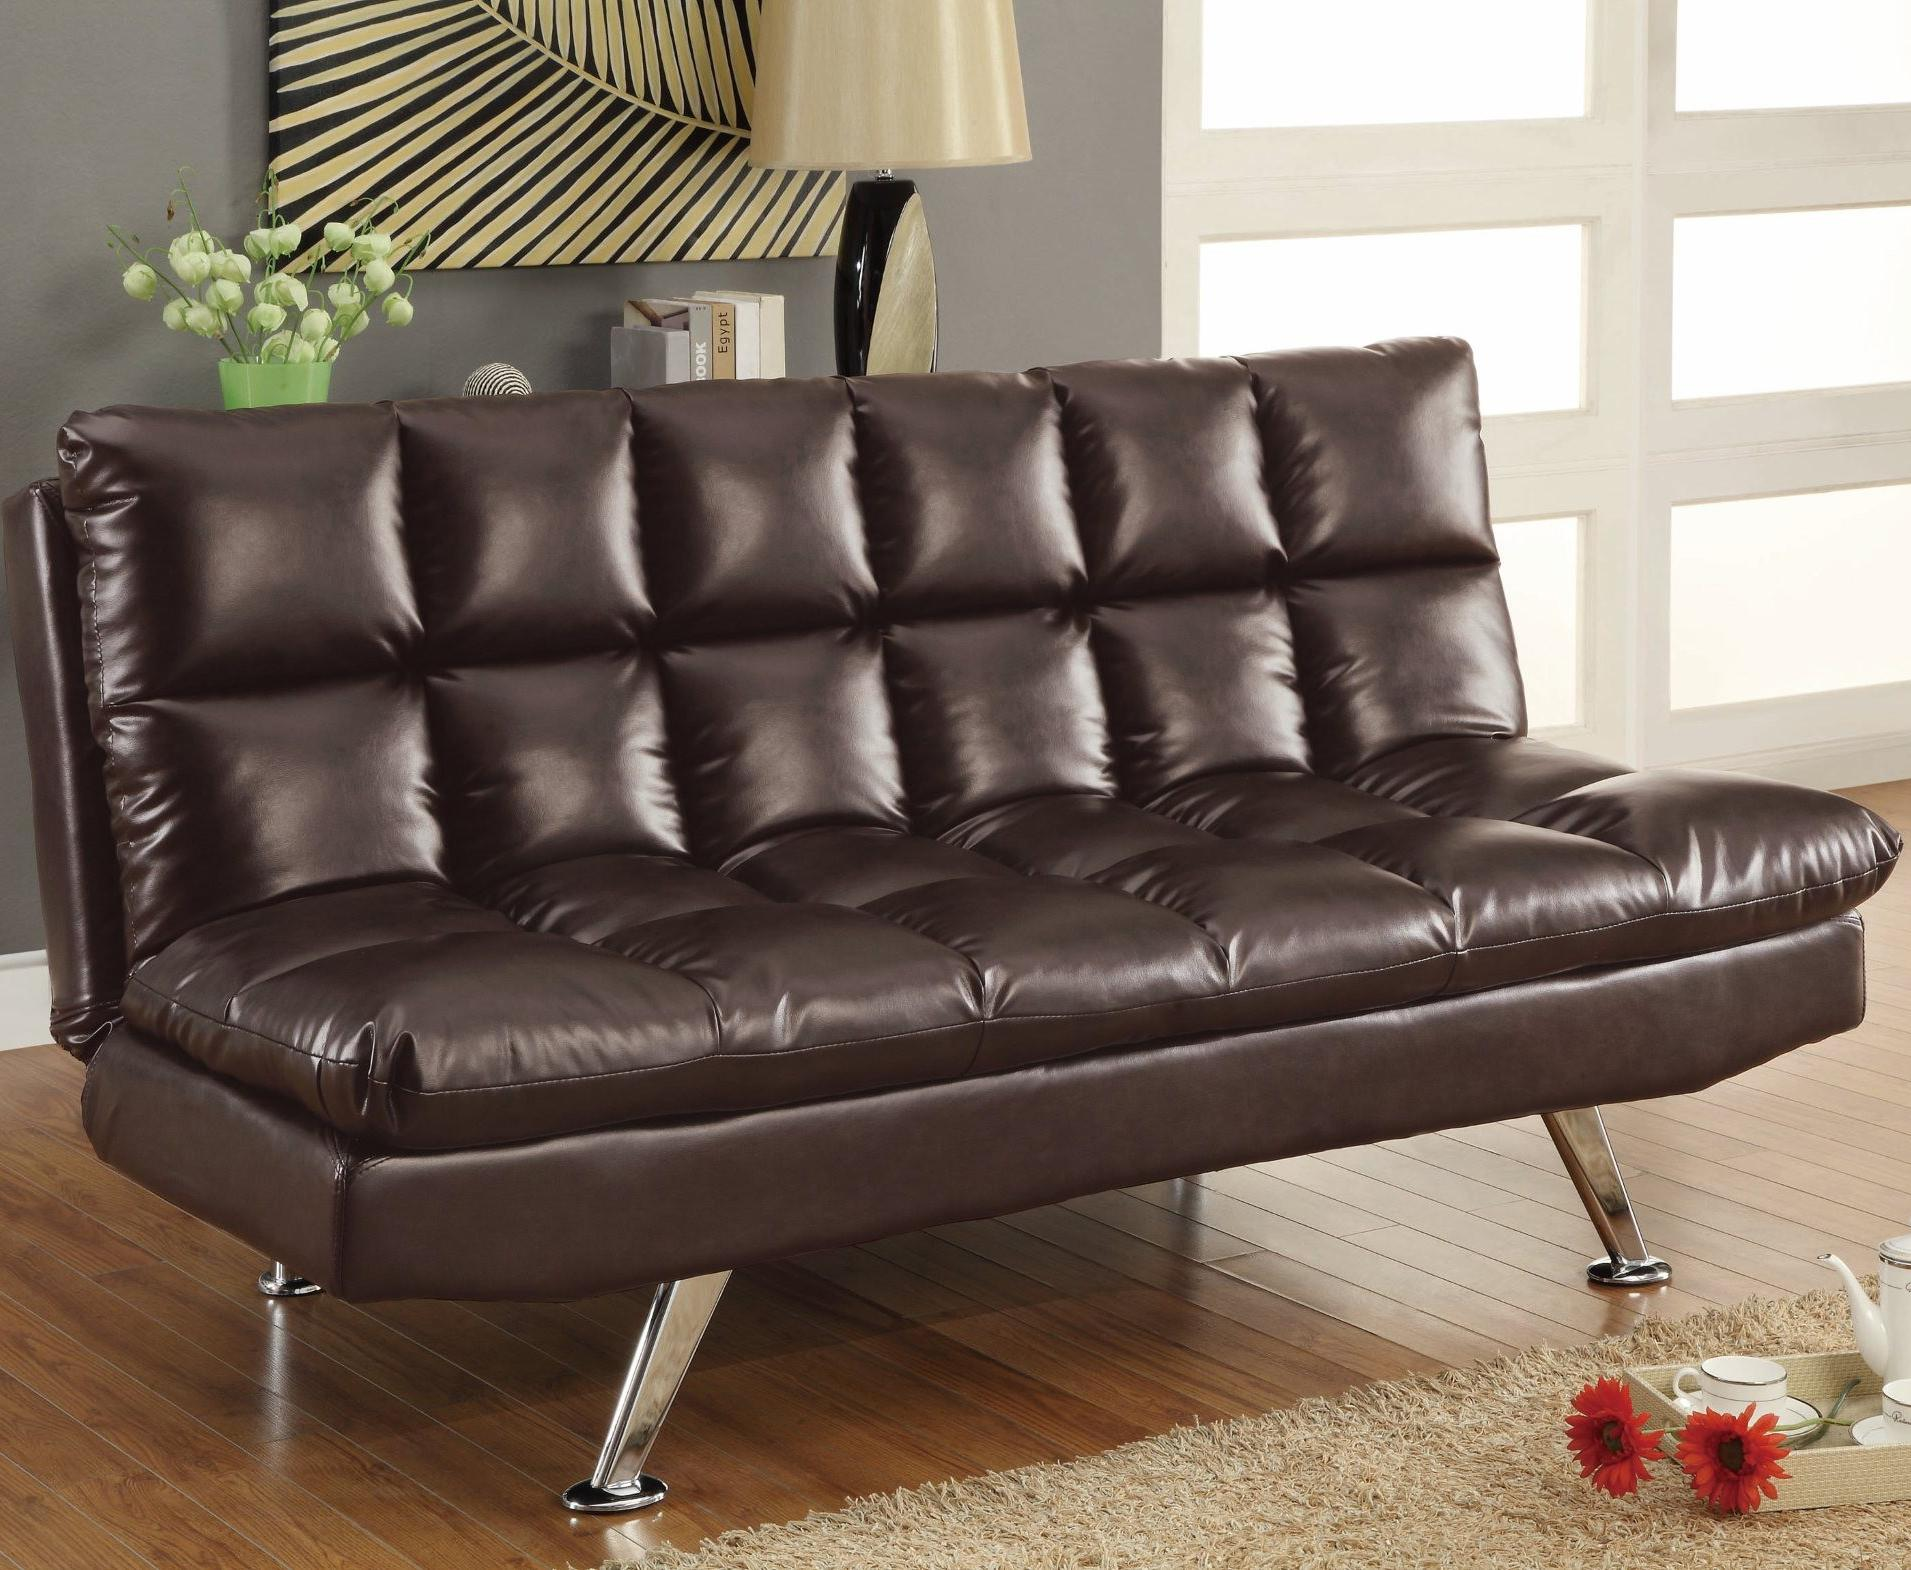 Adjustable Brown Sofa Bed with Cup Holders